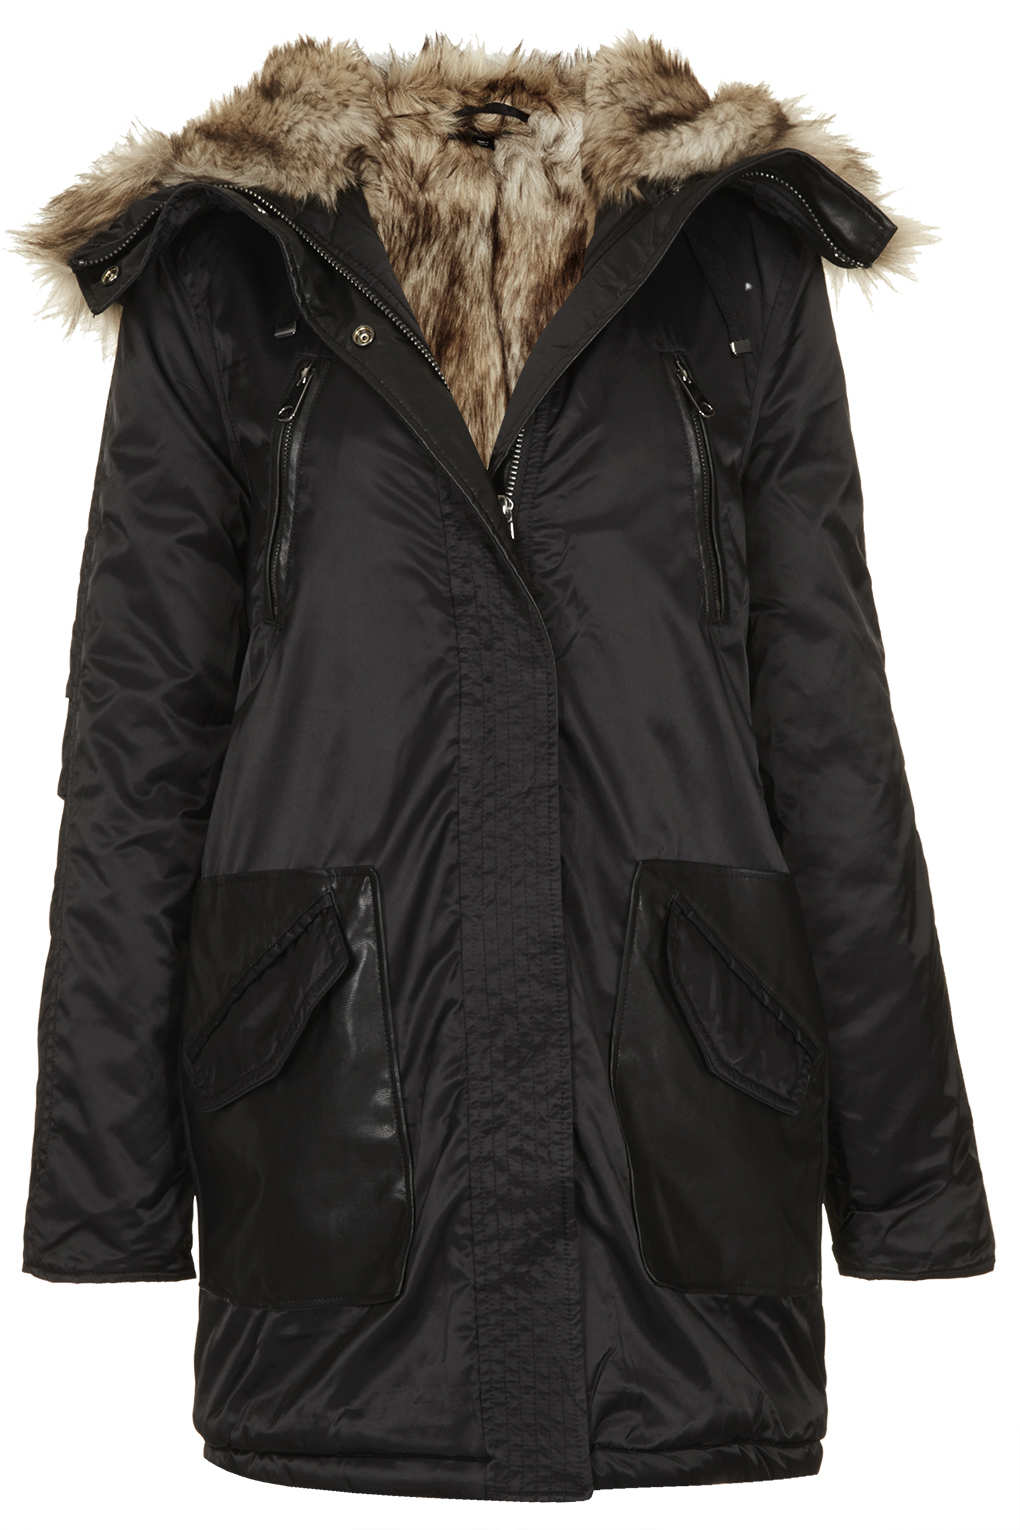 Topshop Fur Lined Long Parka Jacket in Black | Lyst